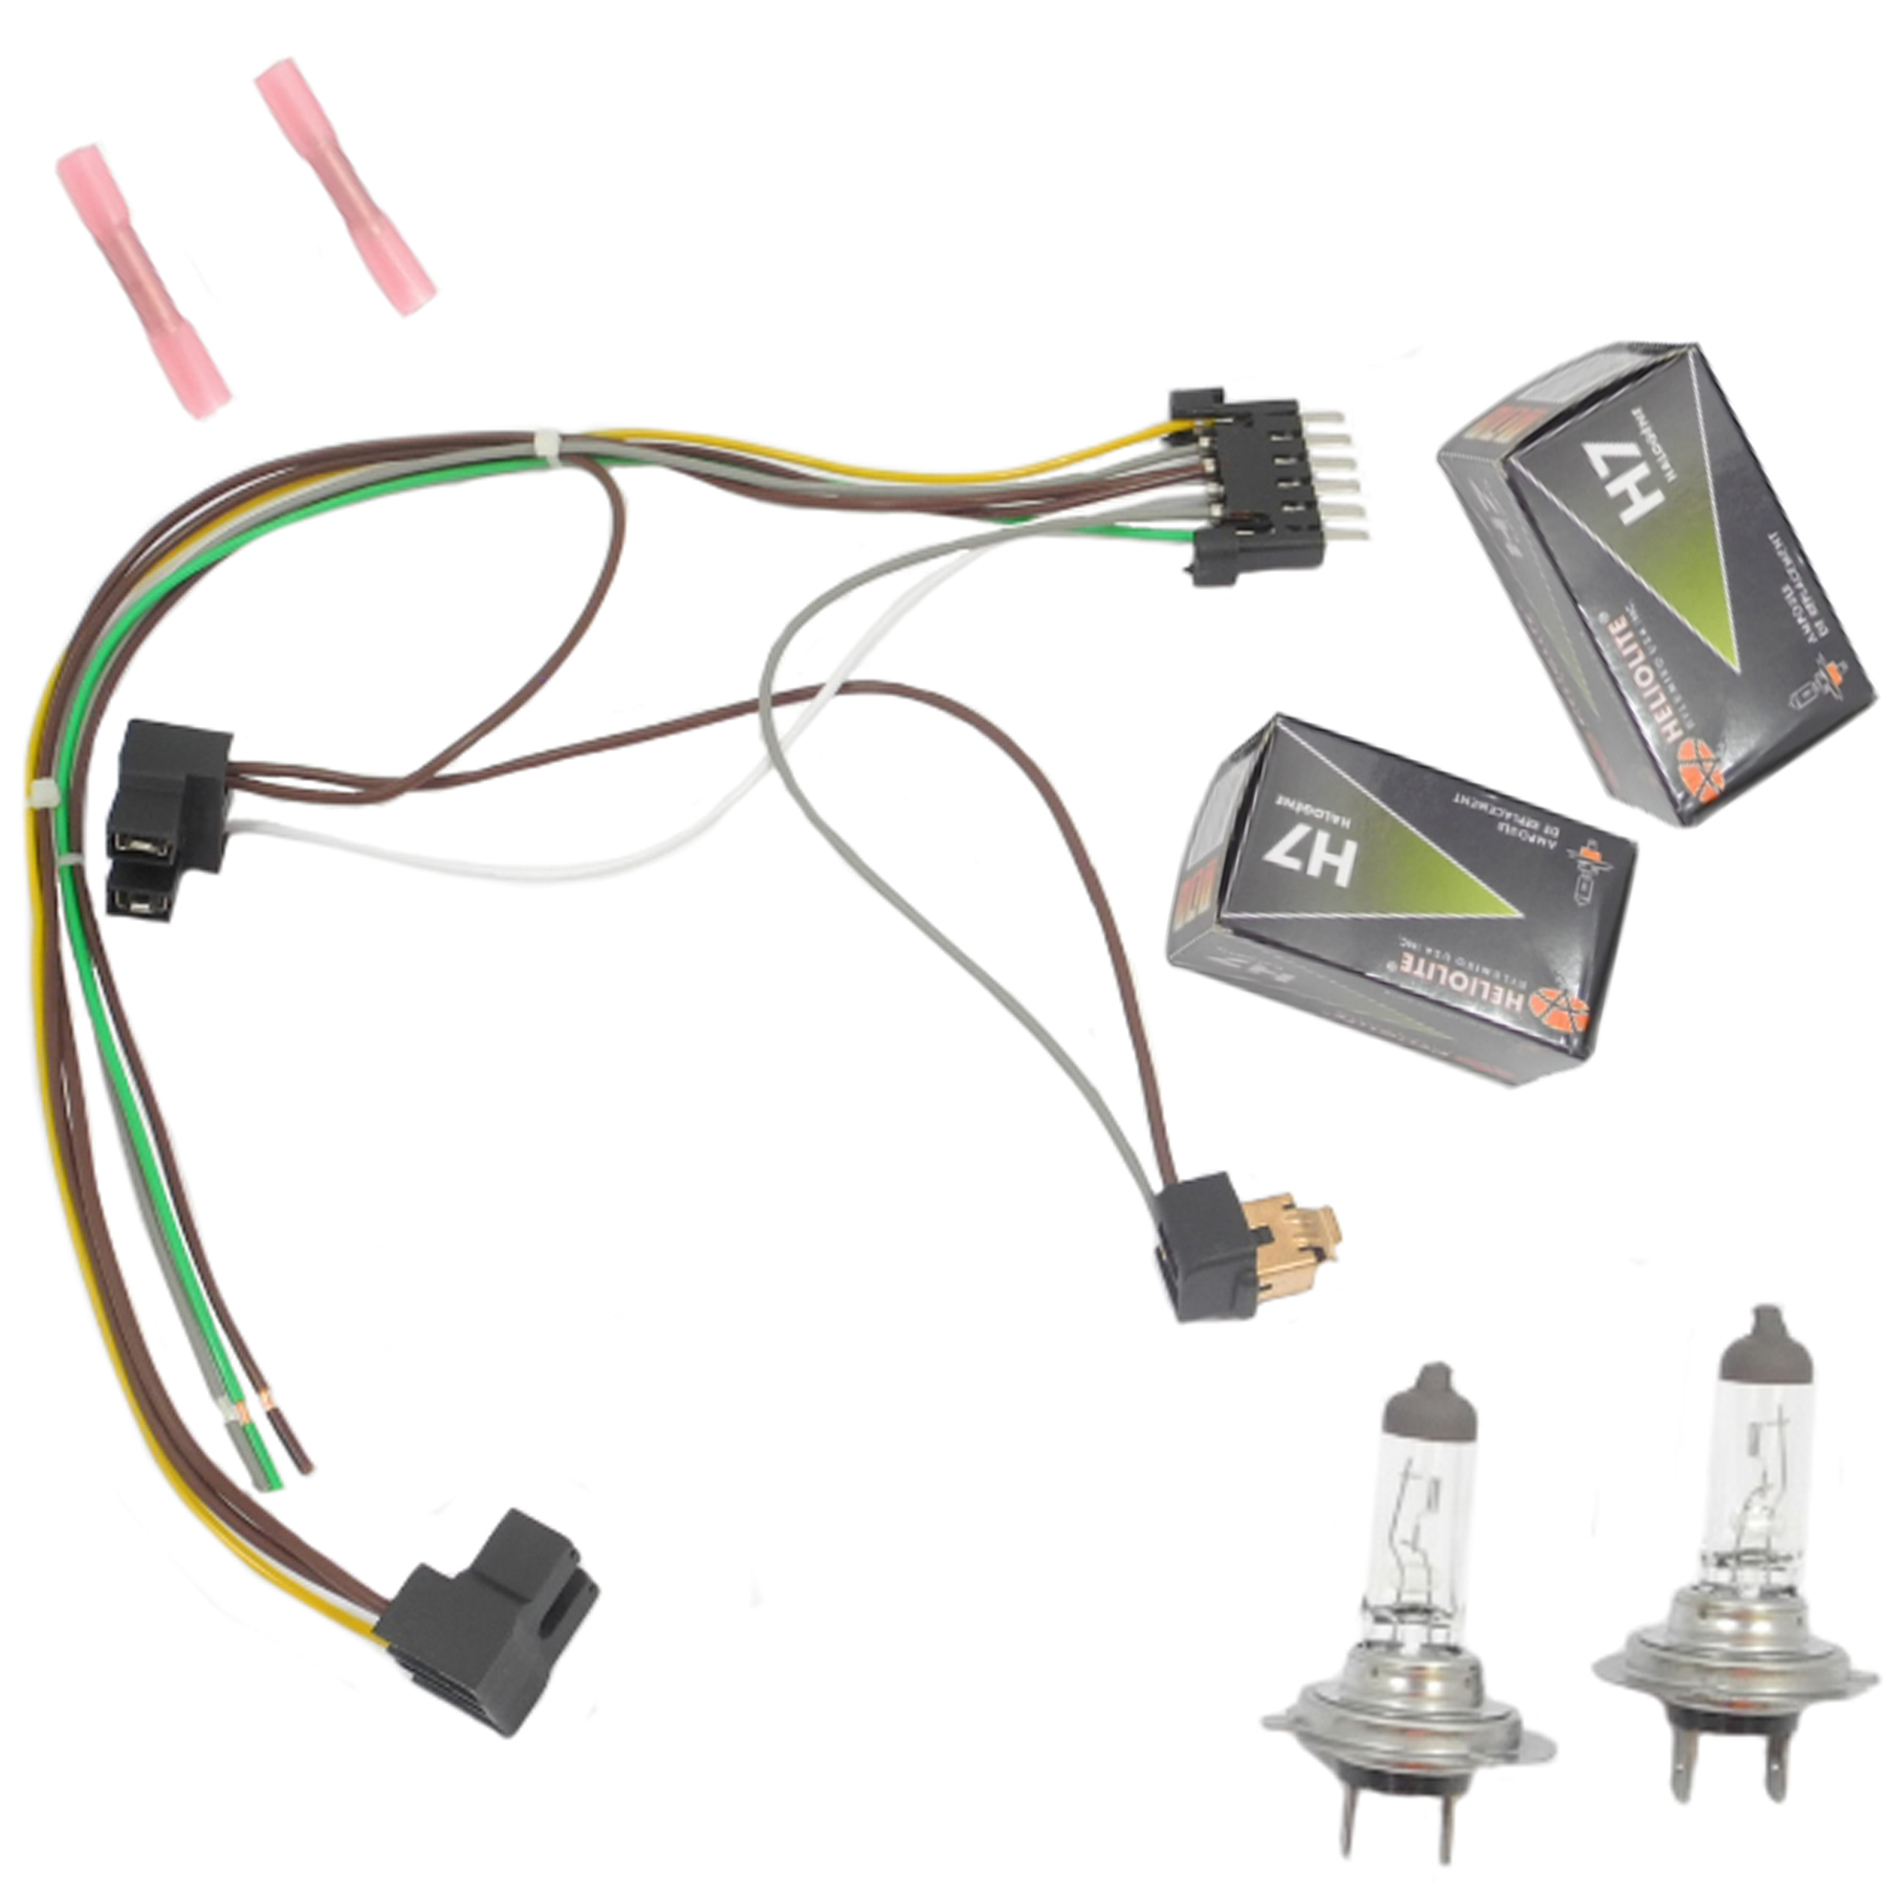 hight resolution of cf advance for 00 02 mercedes benz s430 s500 s500 amg s600 left or right headlight wiring harness and h7 55w headlight bulb 2000 2001 2002 walmart com